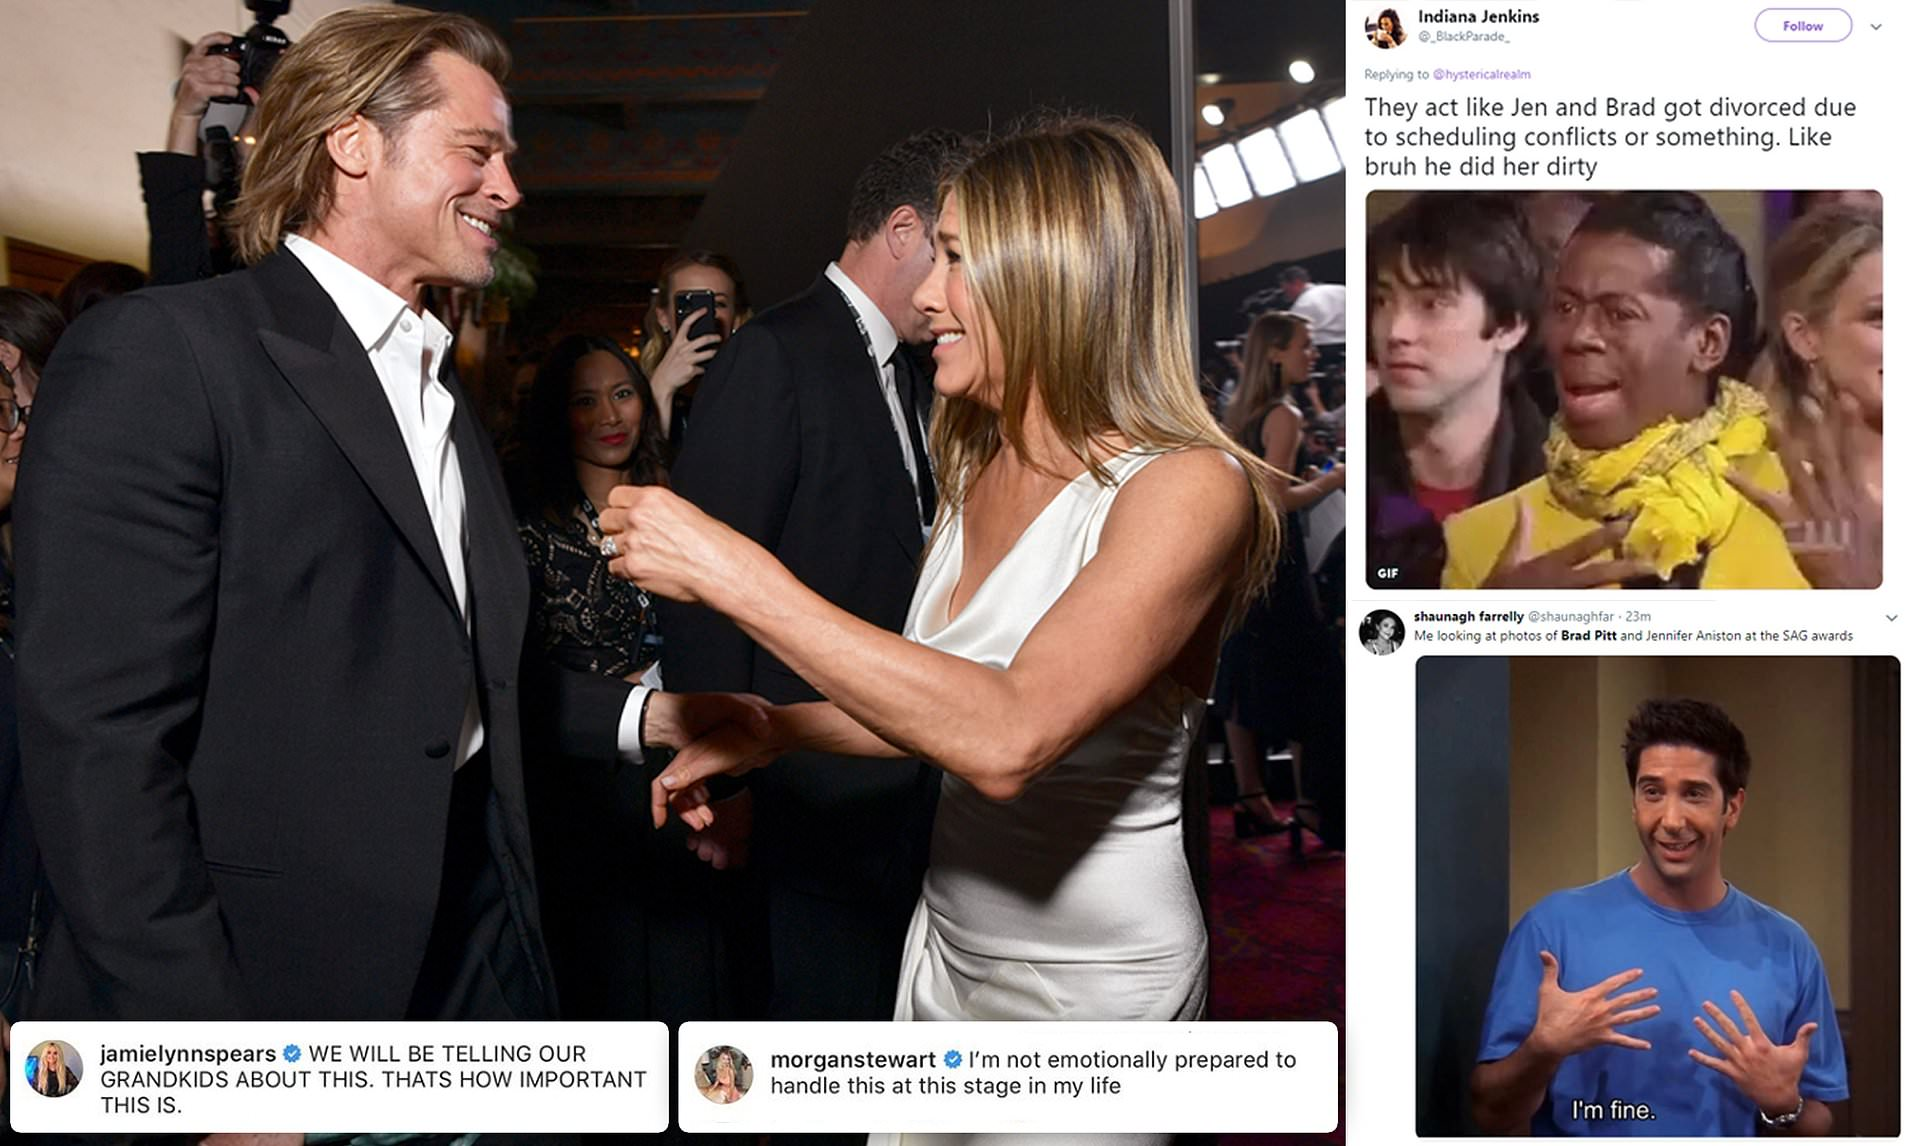 Backstage Pictures Of Brad Pitt And Jennifer Aniston Send Twitter Into A Frenzy Daily Mail Online